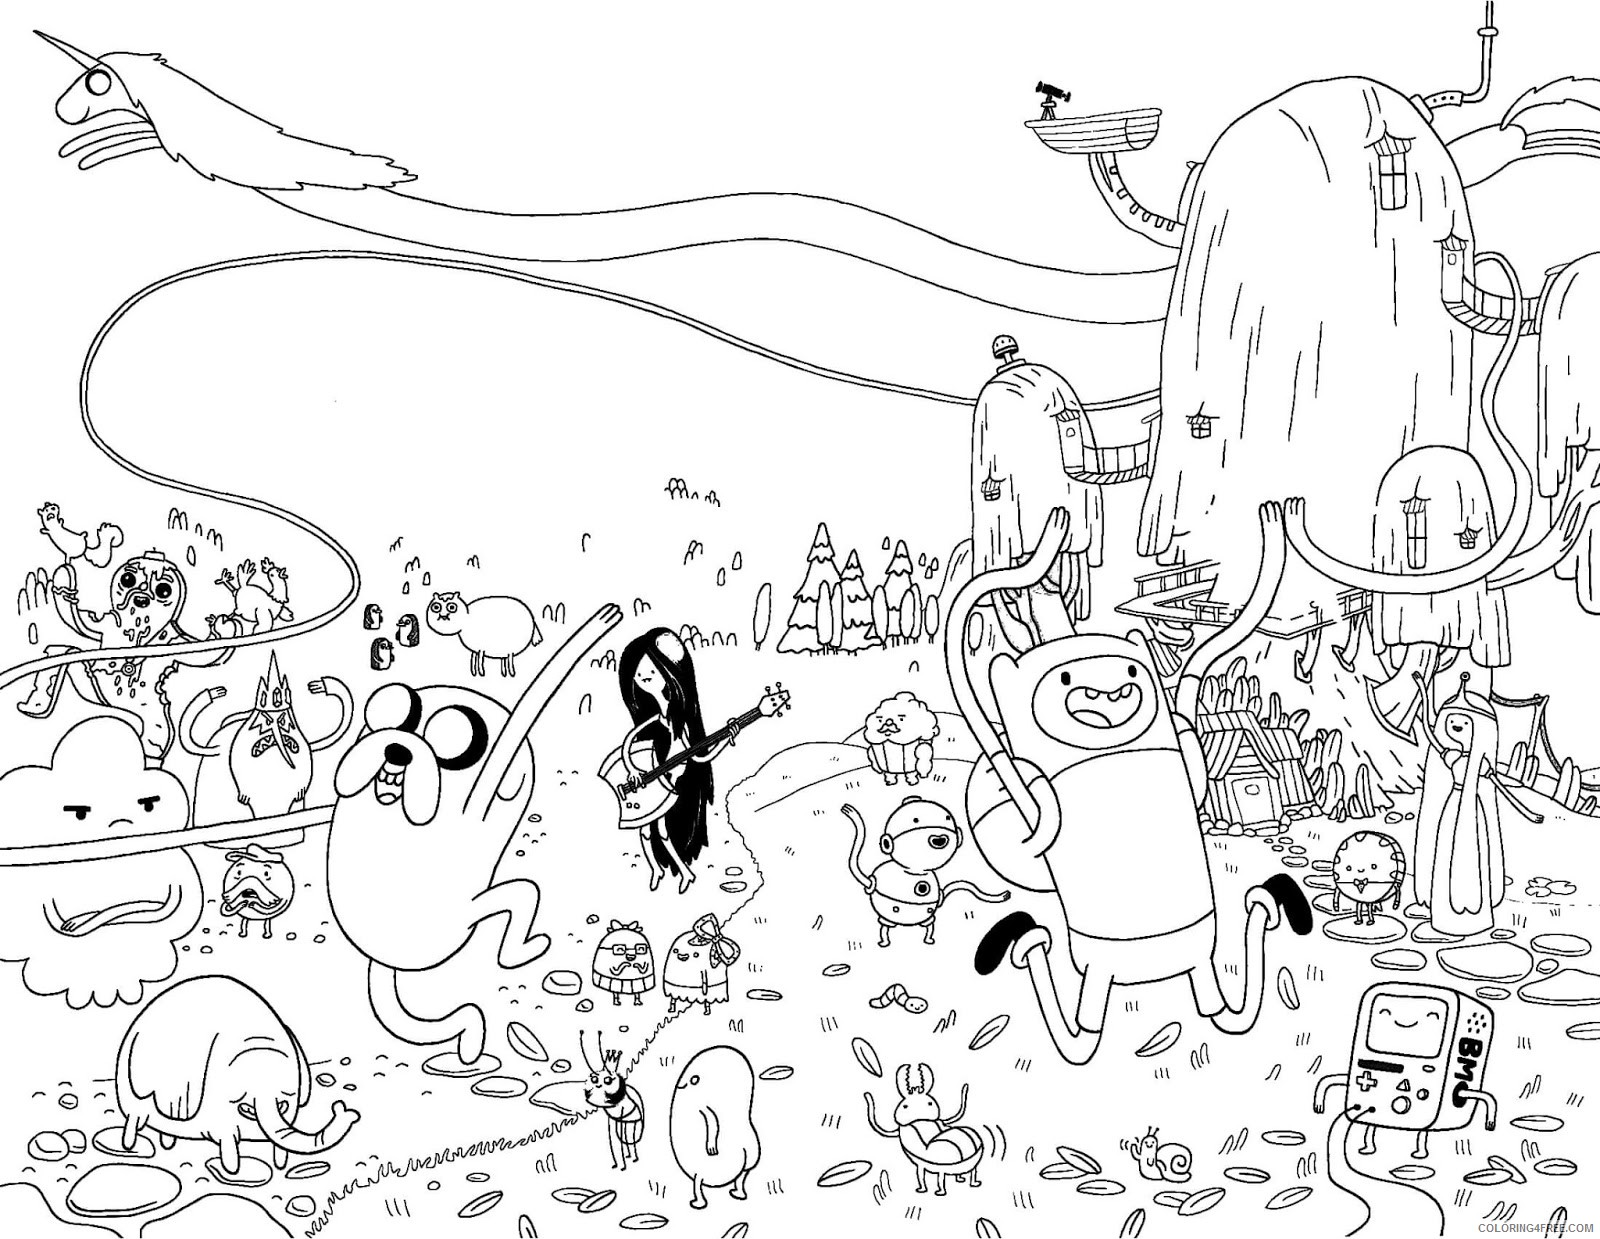 printable adventure time coloring pages Coloring4free